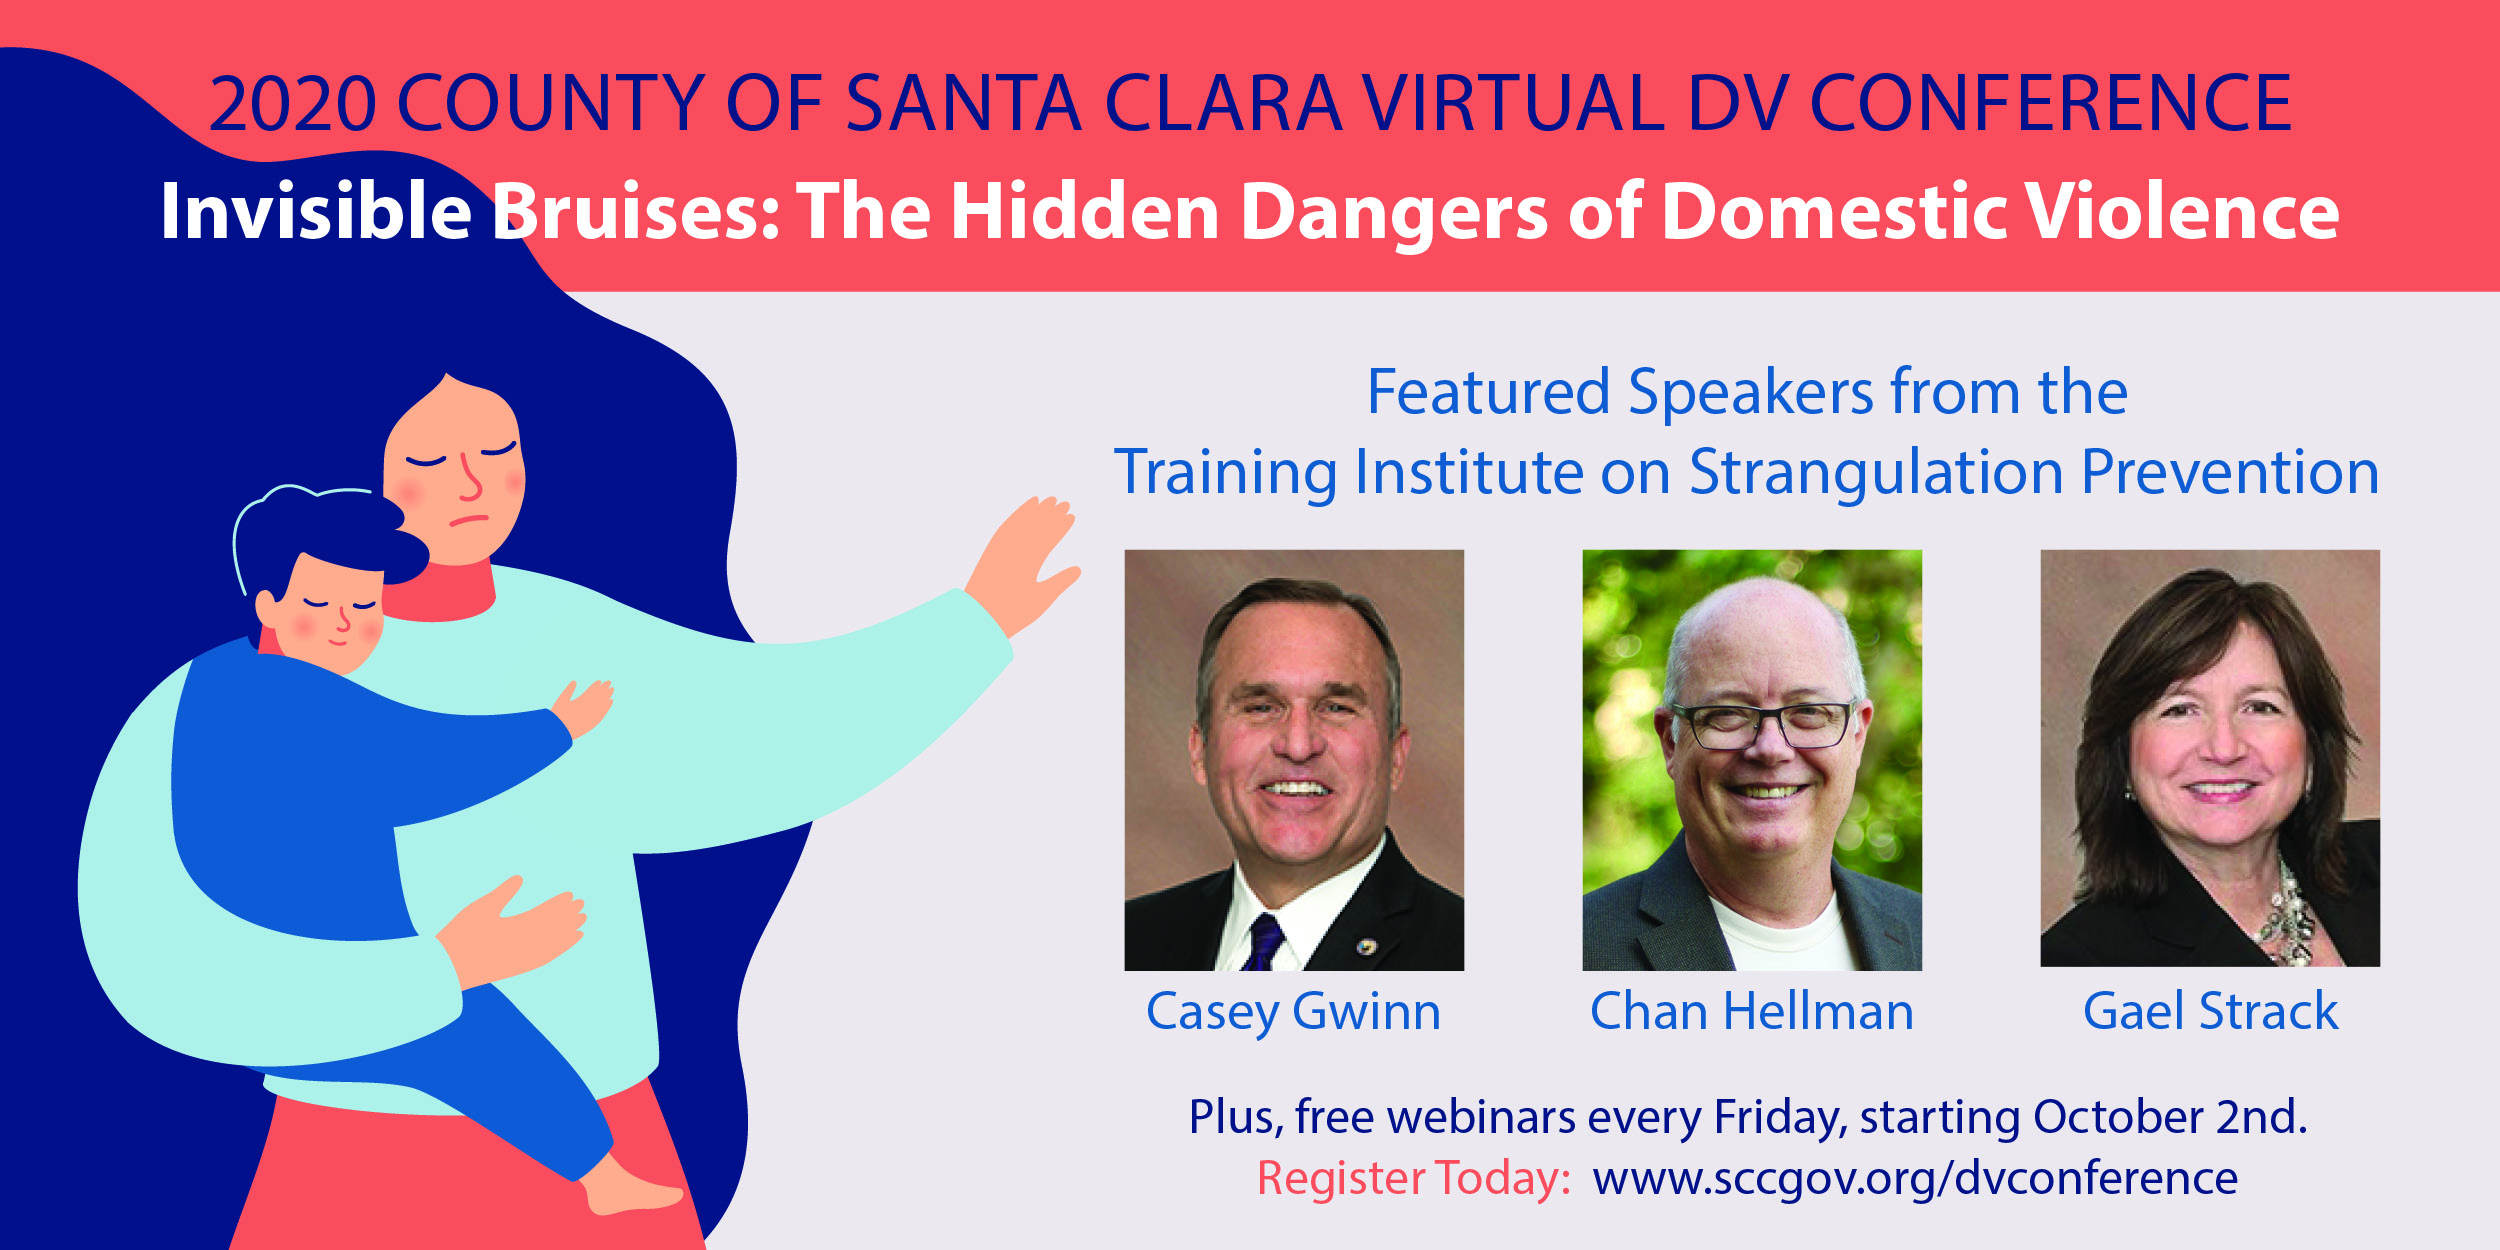 Santa Clara County Virtual DV Conference, Promotion flyer with featured speakers